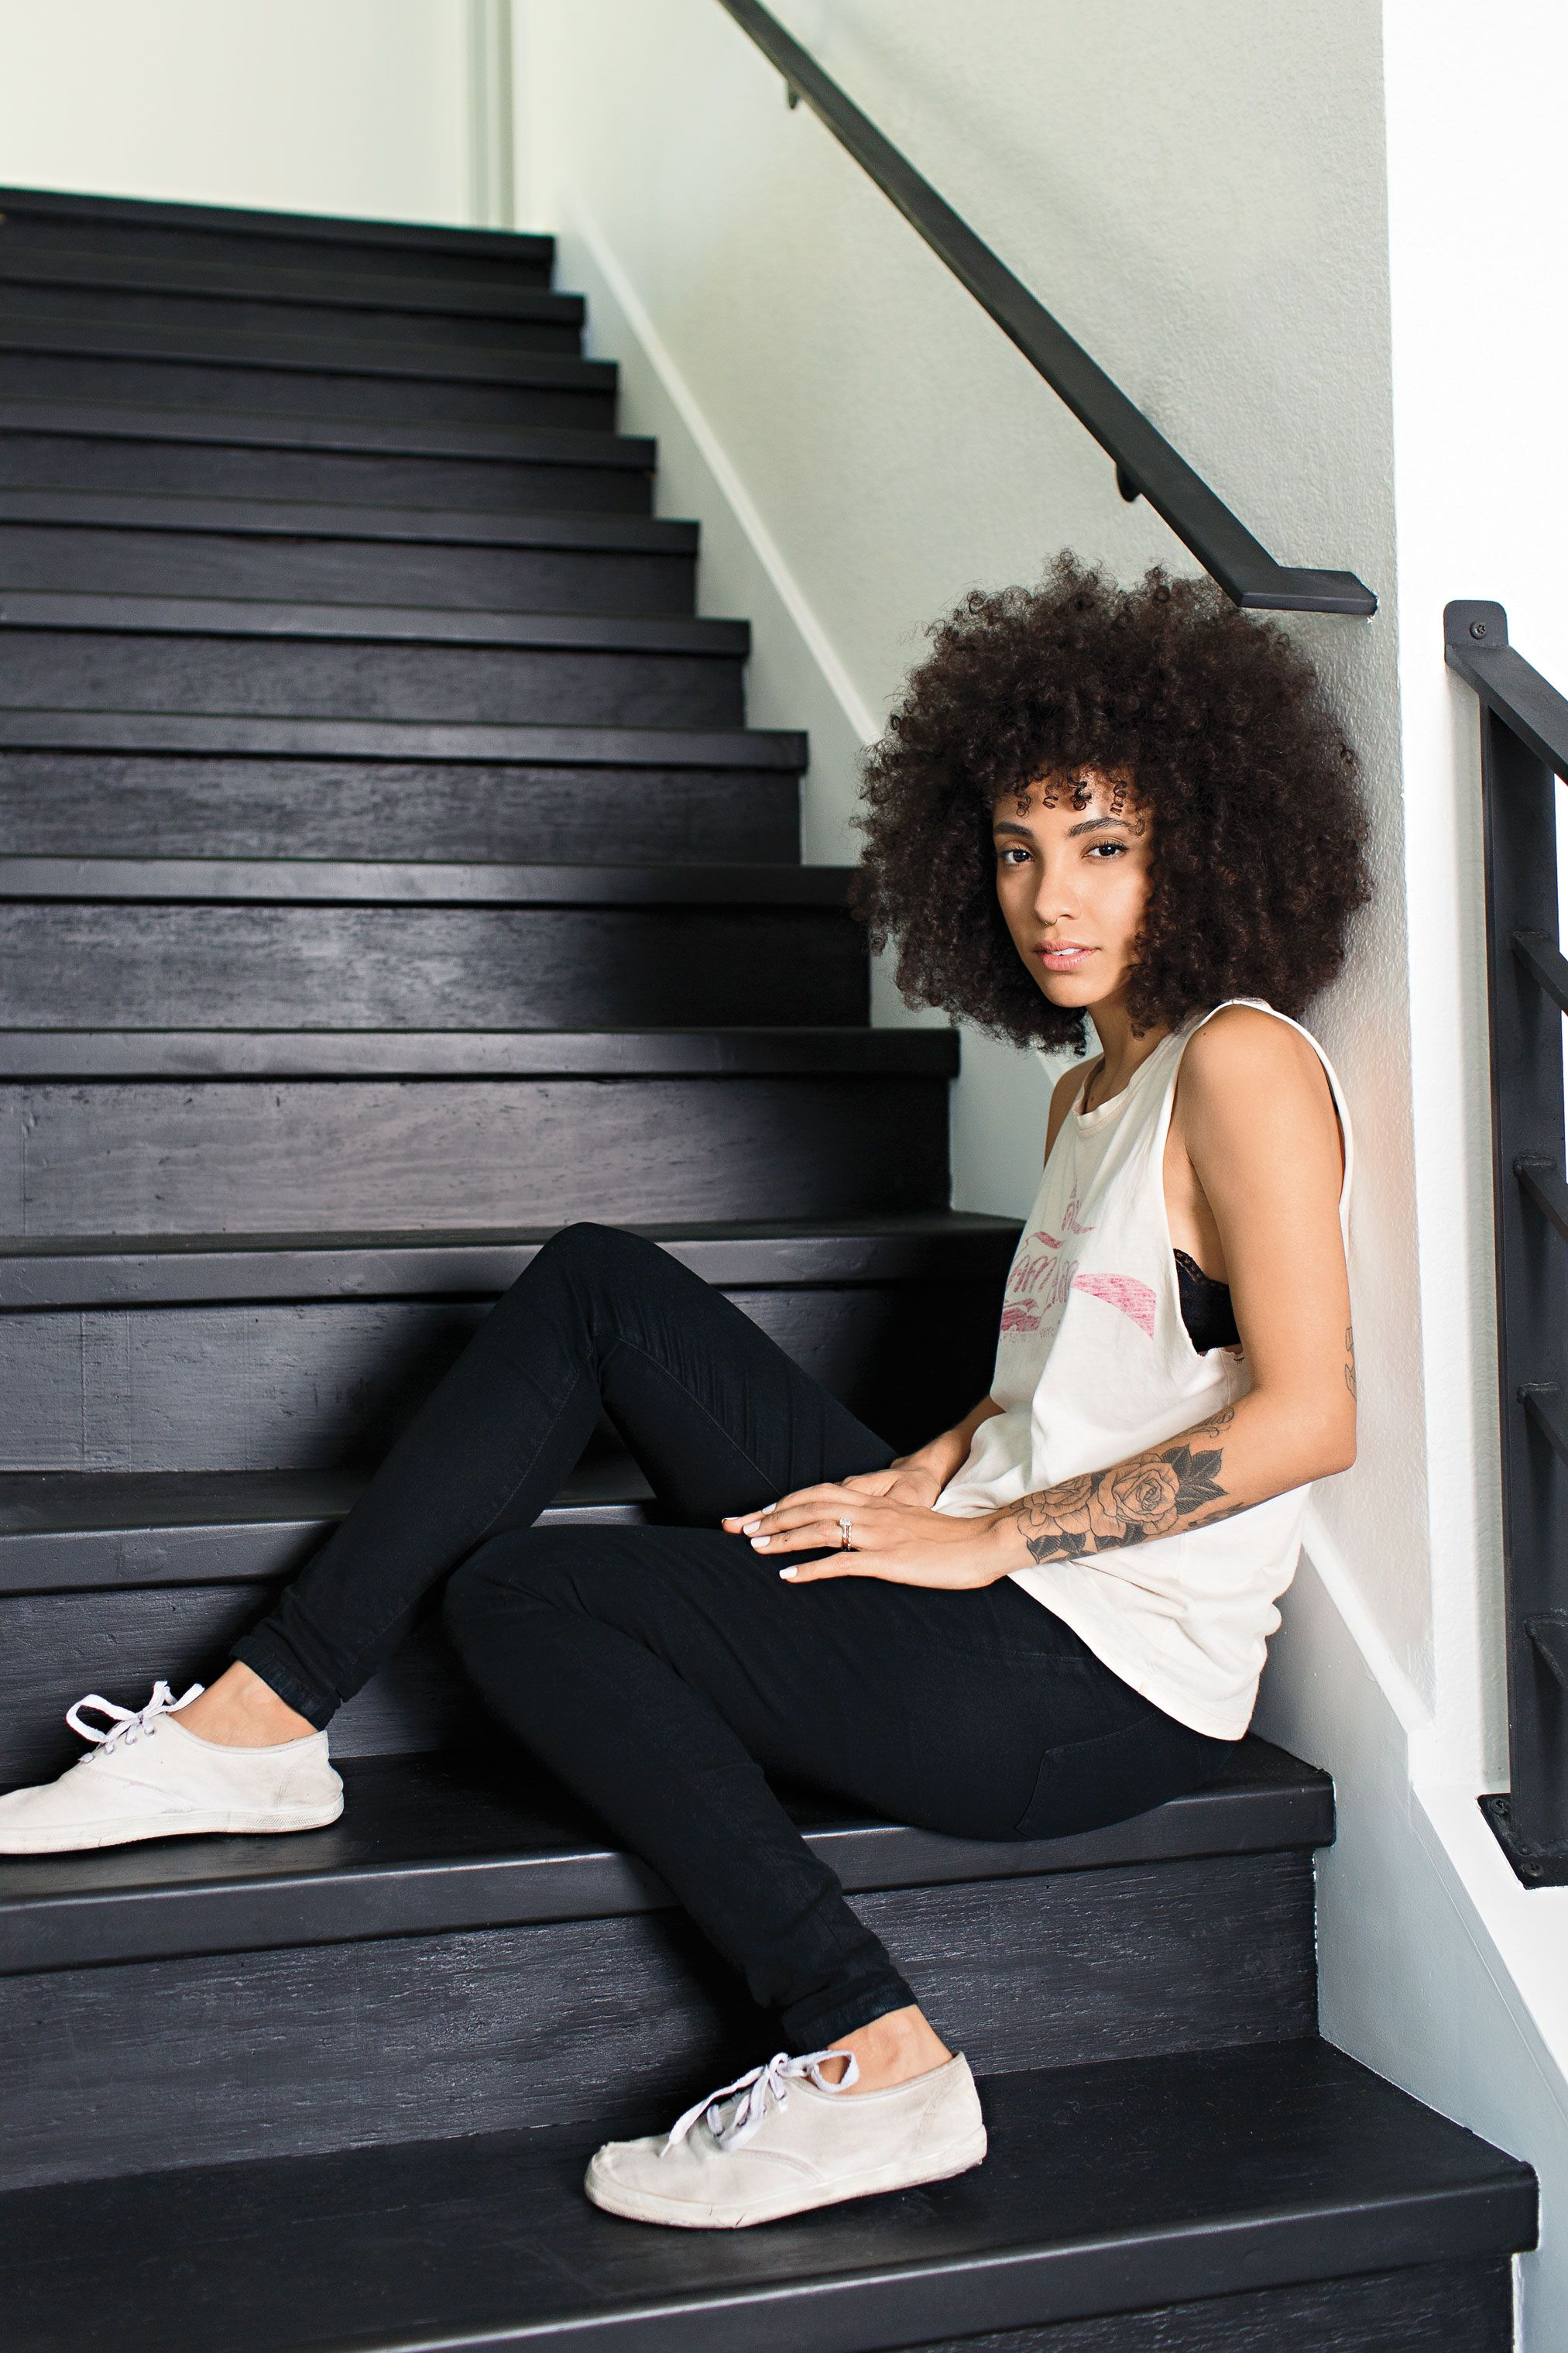 """<p>This Texas-based cofounder of lifestyle blog <em>Pineapple.life</em> grew up hating the texture of her voluminous, tightly curled hair. """"But today, people say, 'I wish I had hair like yours!' And that's wild.""""</p><p><strong>MY GOOD HAIR DAY: </strong>""""Honestly, the bigger the better! If your spirit is huge, your hair can be huge!""""</p><p><strong>WEEKEND ESSENTIAL: </strong>Every other week, Brunson uses Elucence clarifying shampoo, then smooths in Shea Moisture Jamaican Black Castor Oil leave-in conditioner. (She's also currently developing her own product line, Folie.) Then she air-dries: """"No blow-dryers.""""</p><p><strong>MORNING NEWS: </strong>""""I'll fluff out my hair with my fingers to help the curls separate. Then I use a little bit of argan oil on ends. This seals the cuticle and prevents breakage. It's the most important thing I do with my hair: Afterward, it's good to go.""""</p>"""